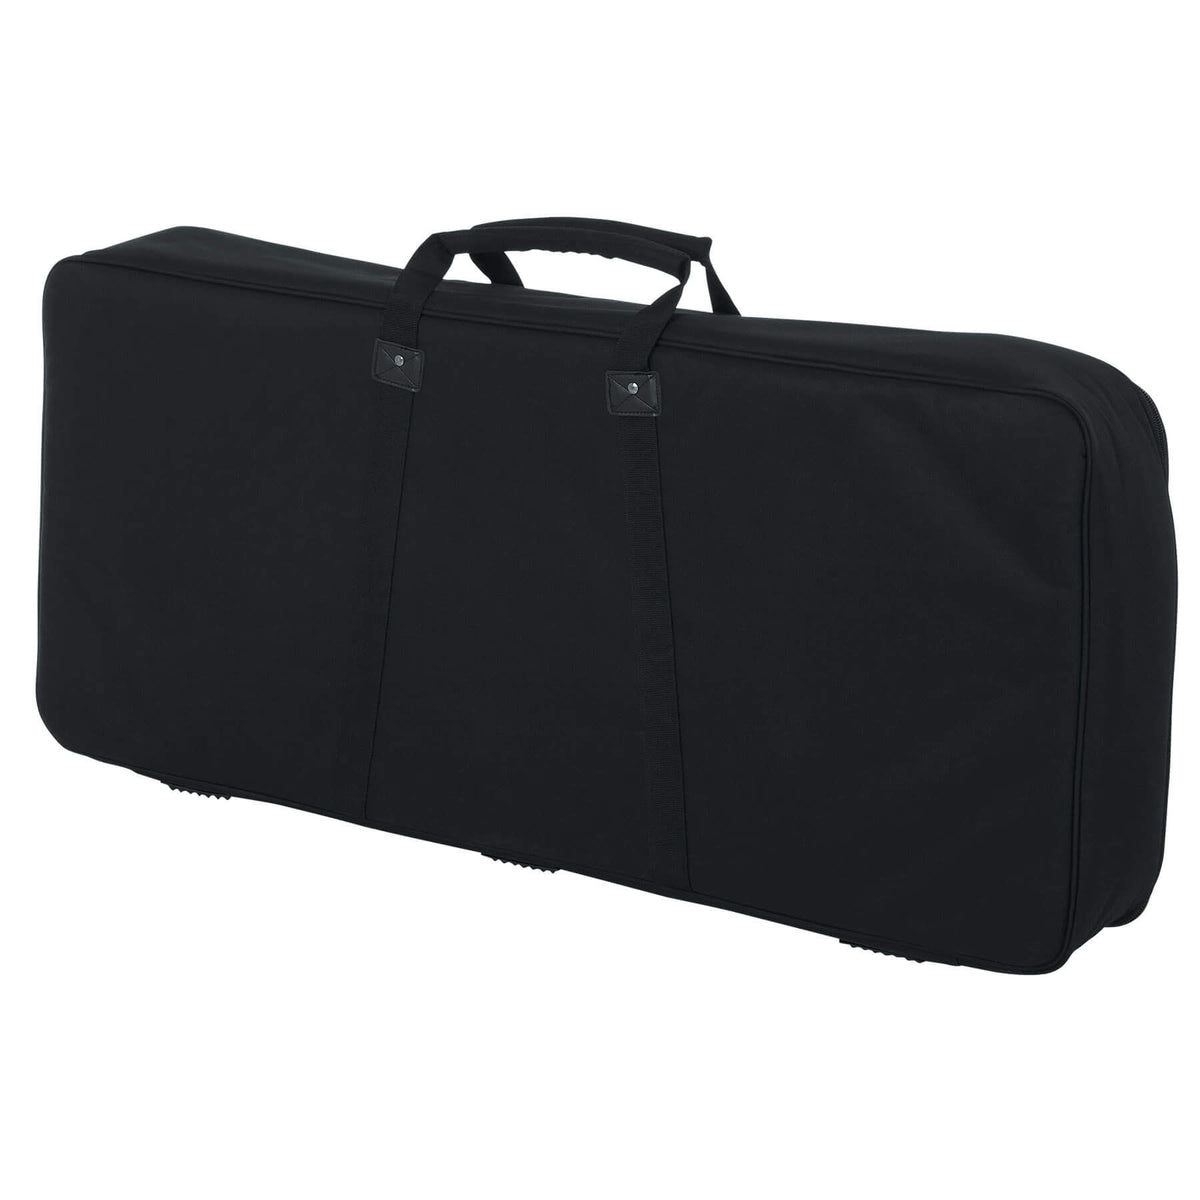 Gator Cases Keyboard Gig Bag for Roland GW-8, JV30, Prelude, XP-50